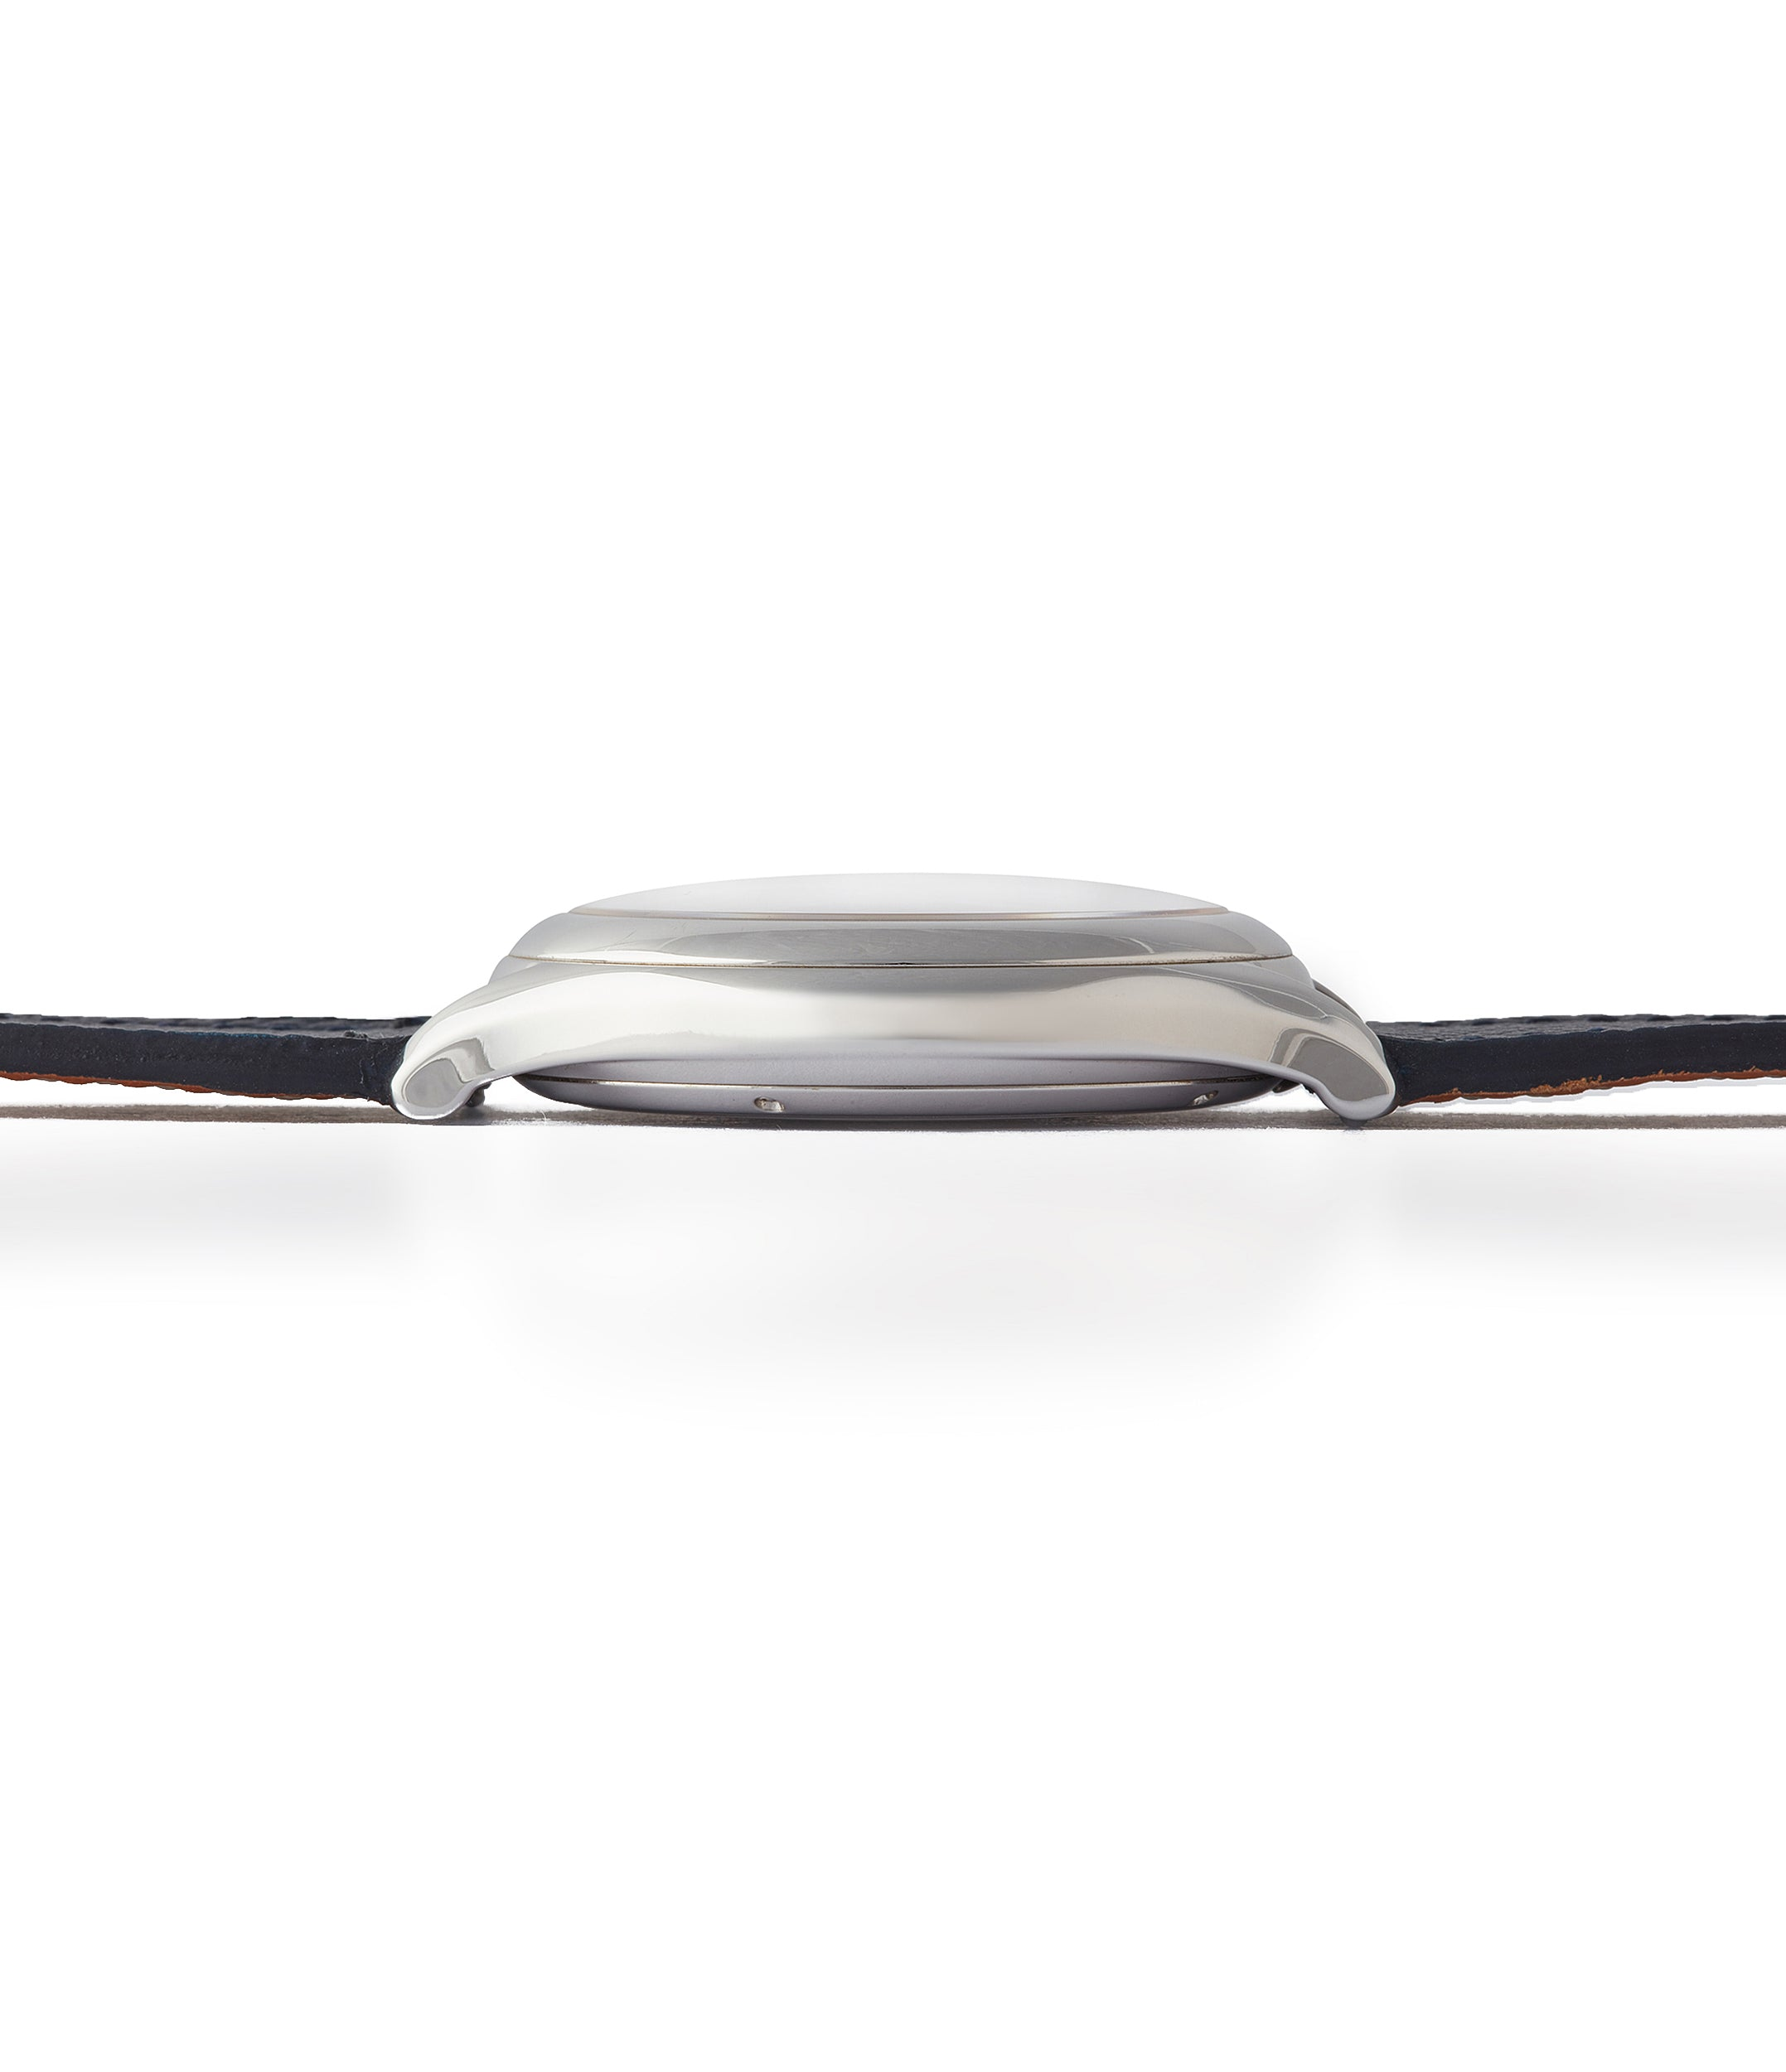 collect limited edition platinum Laurent Ferrier Galet Micro-rotor white enamel dial limited edition dress watch sale A Collected Man London UK specialist of independent watchmakers